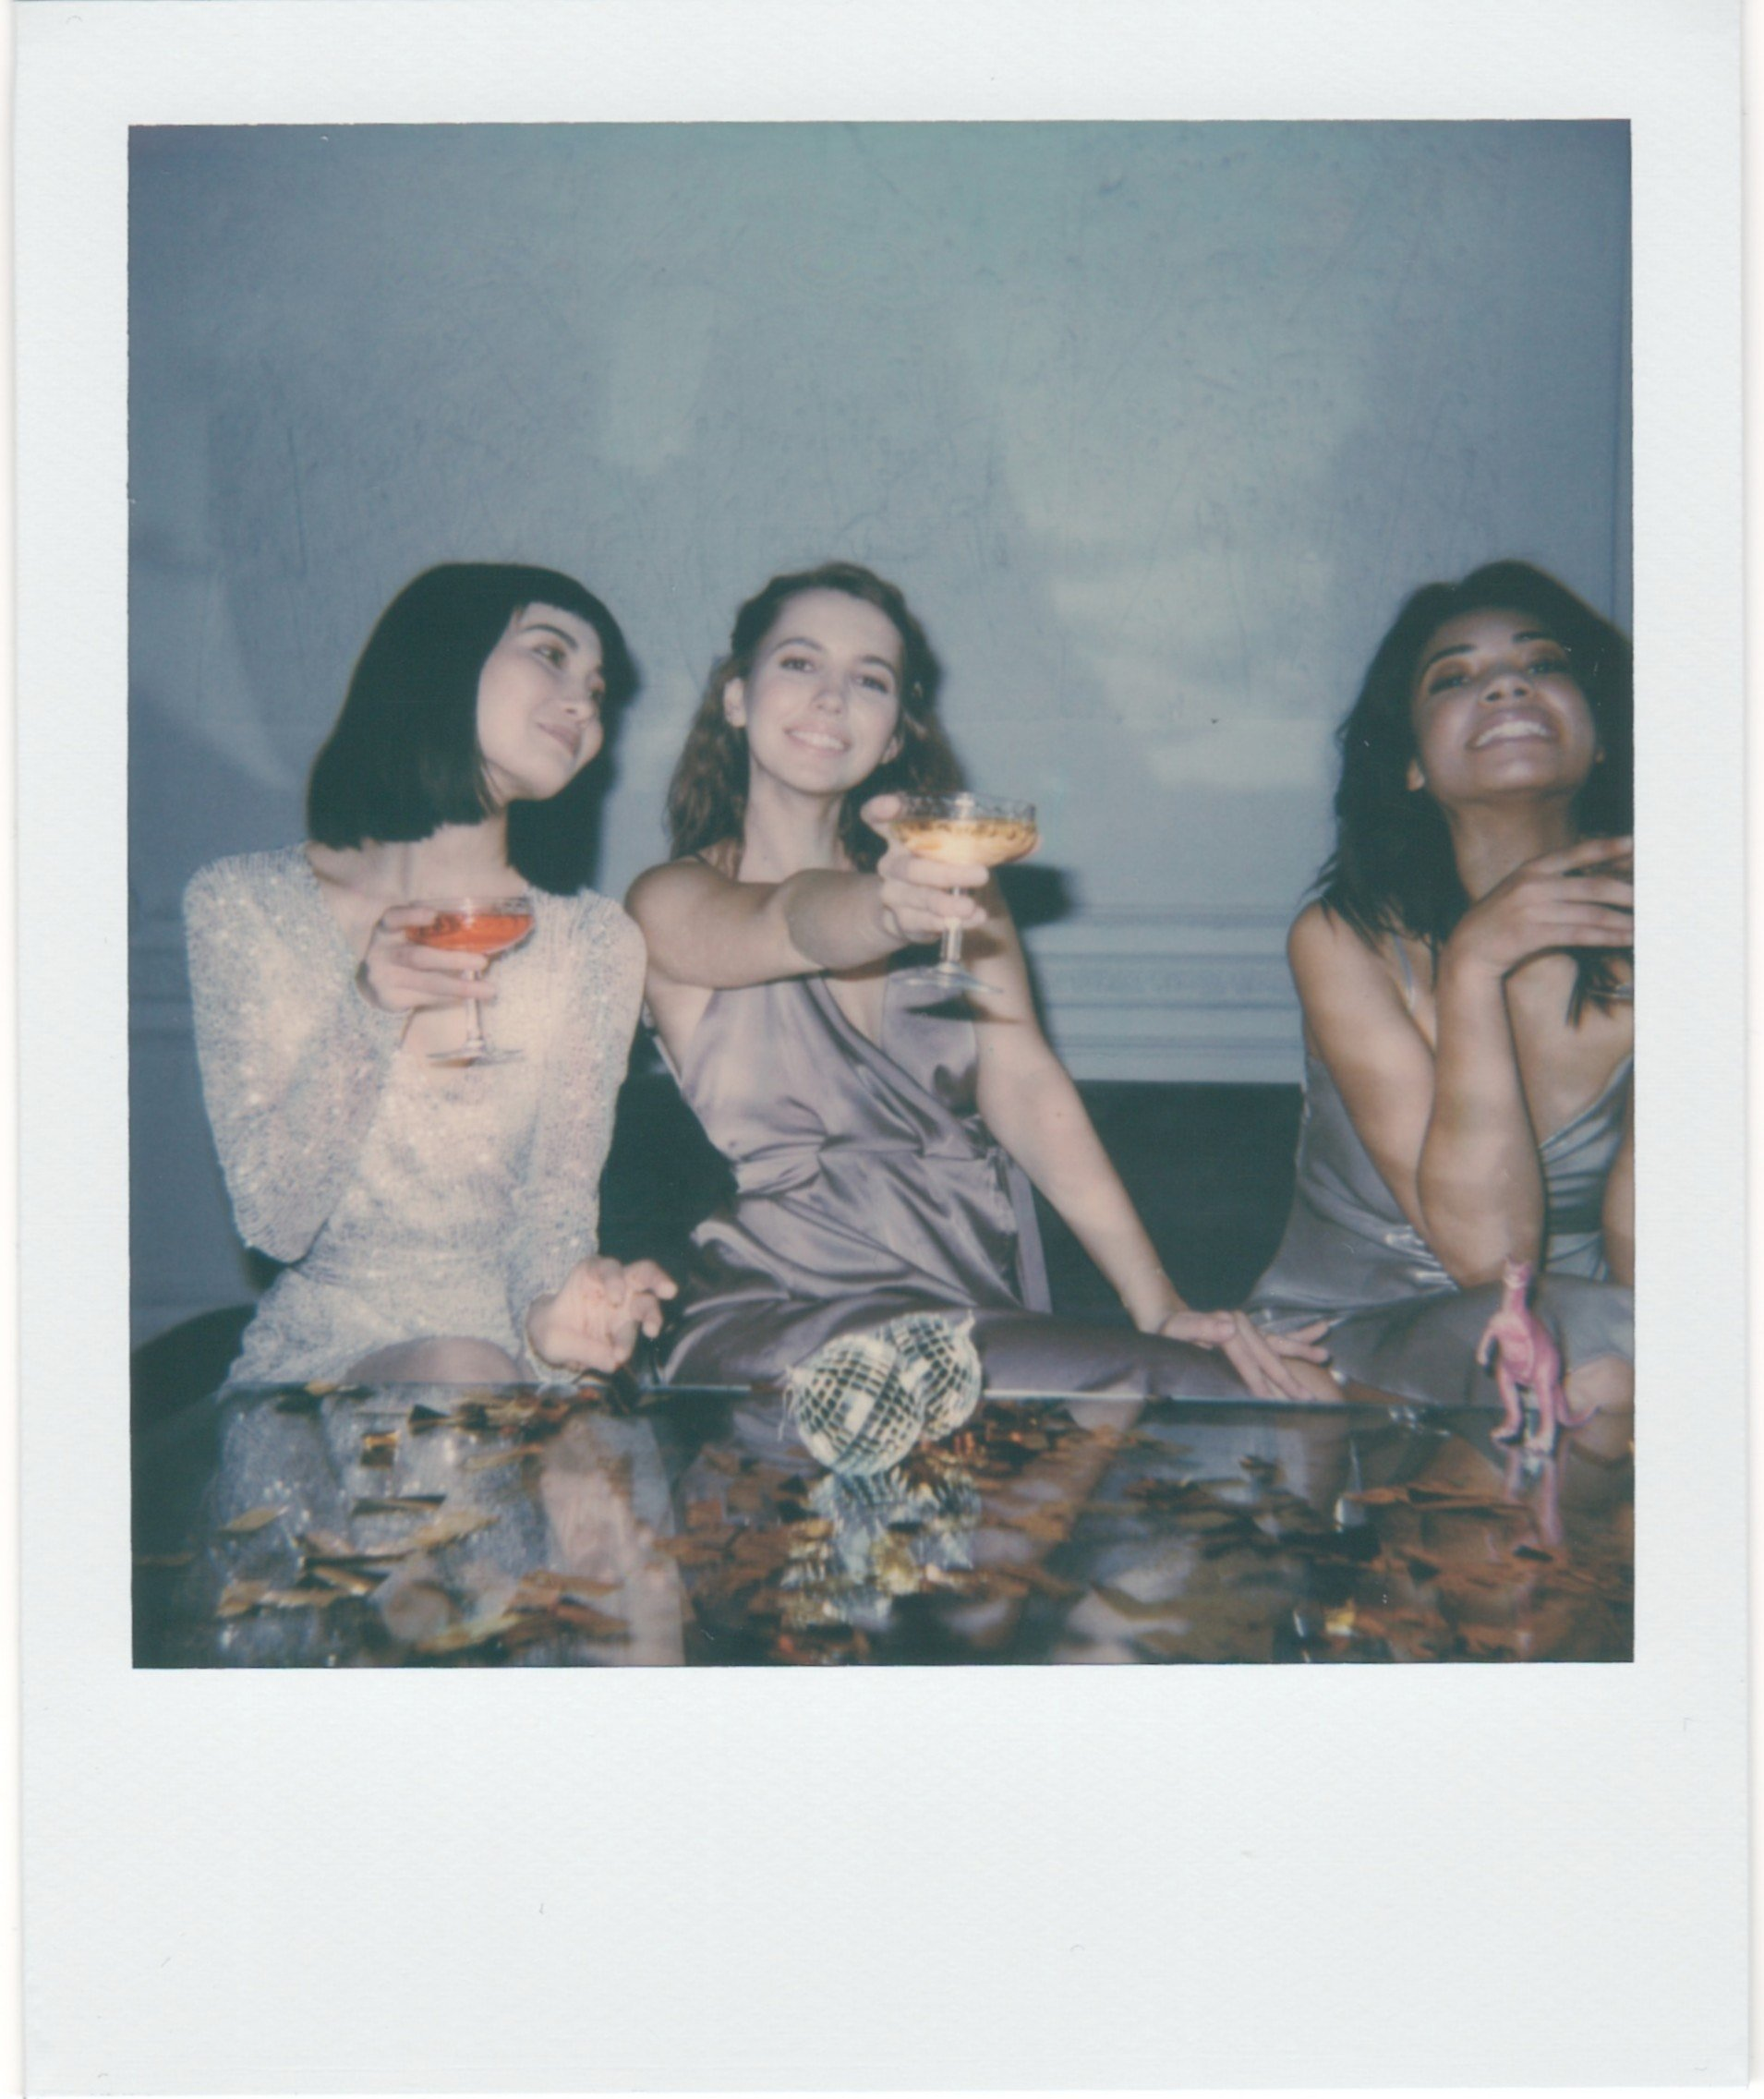 Pictured - Three young women drinking | Source: Pexels